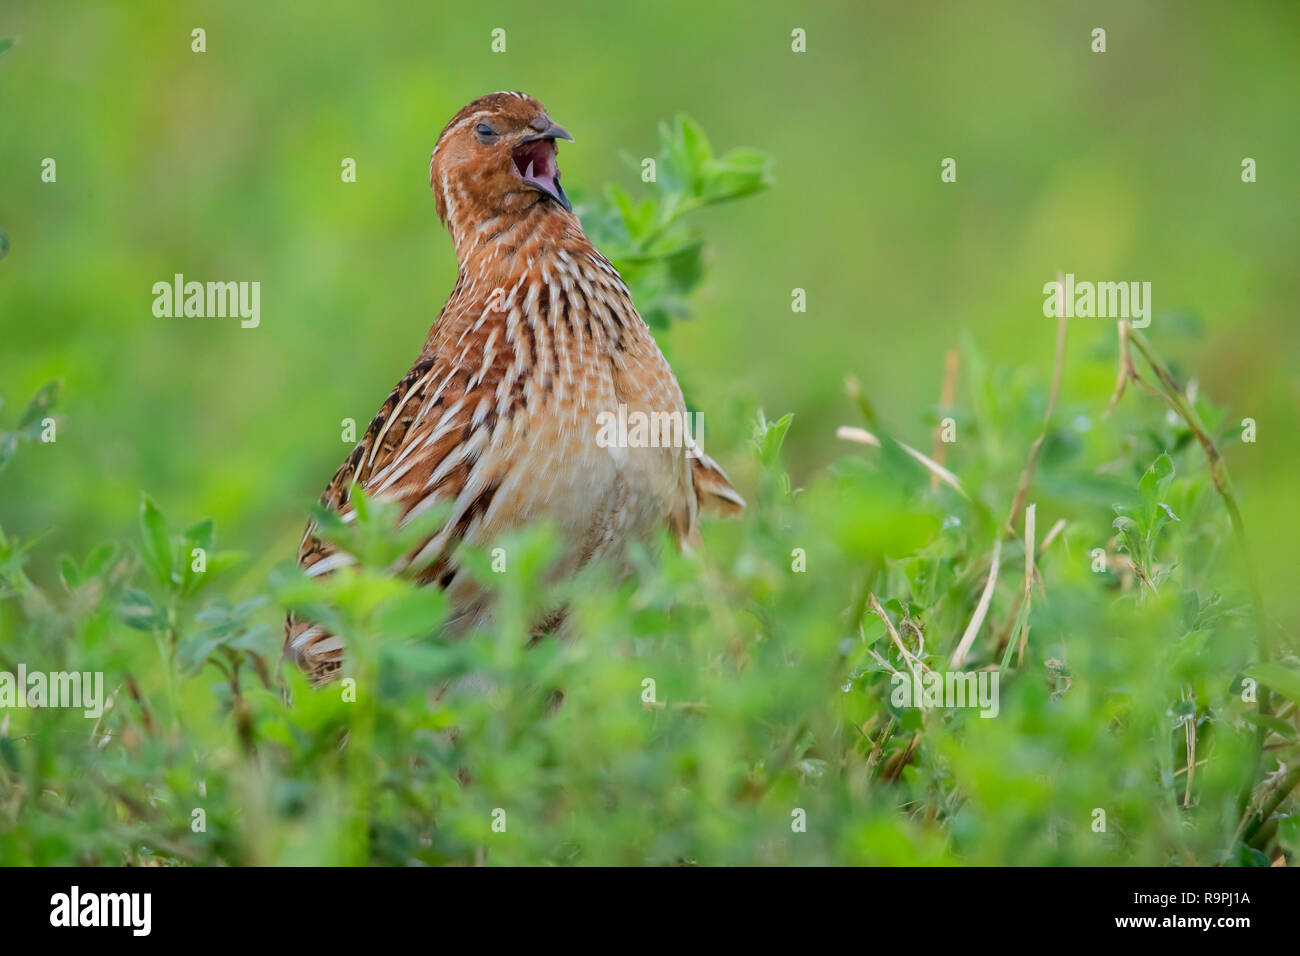 Common Quail (Coturnix coturnix), adult male singing in an Alfalfa field - Stock Image